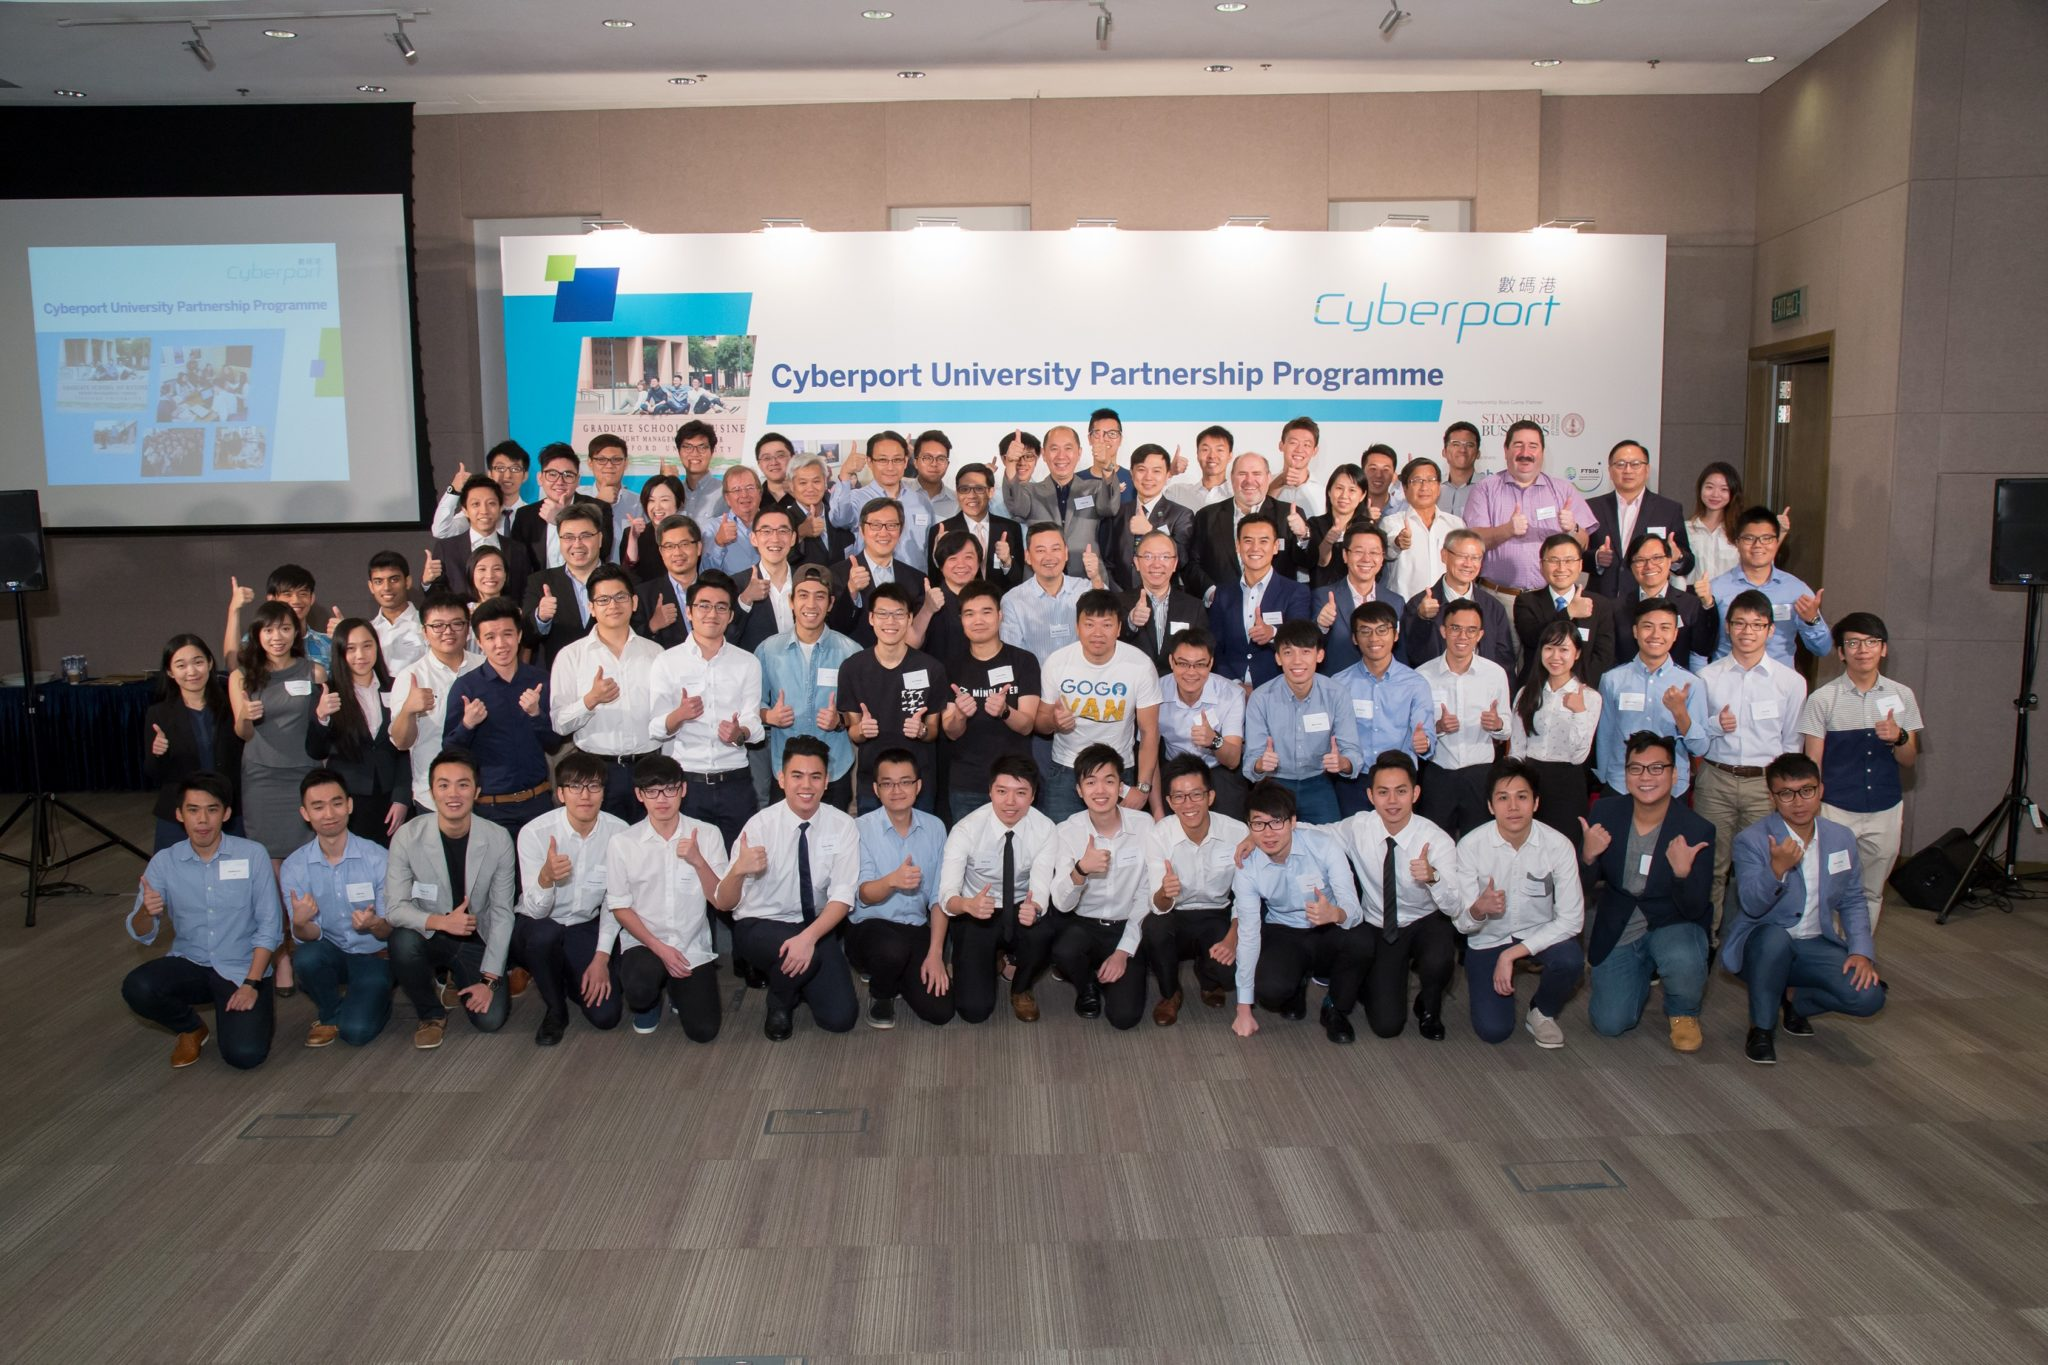 Through the Cyberport University Partnership Programme (CUPP), 20 teams from 6 universities in Hong Kong will bring home from Silicon Valley the FinTech insights and knowledge, including financial strategy, business management and entrepreneurial leadership.